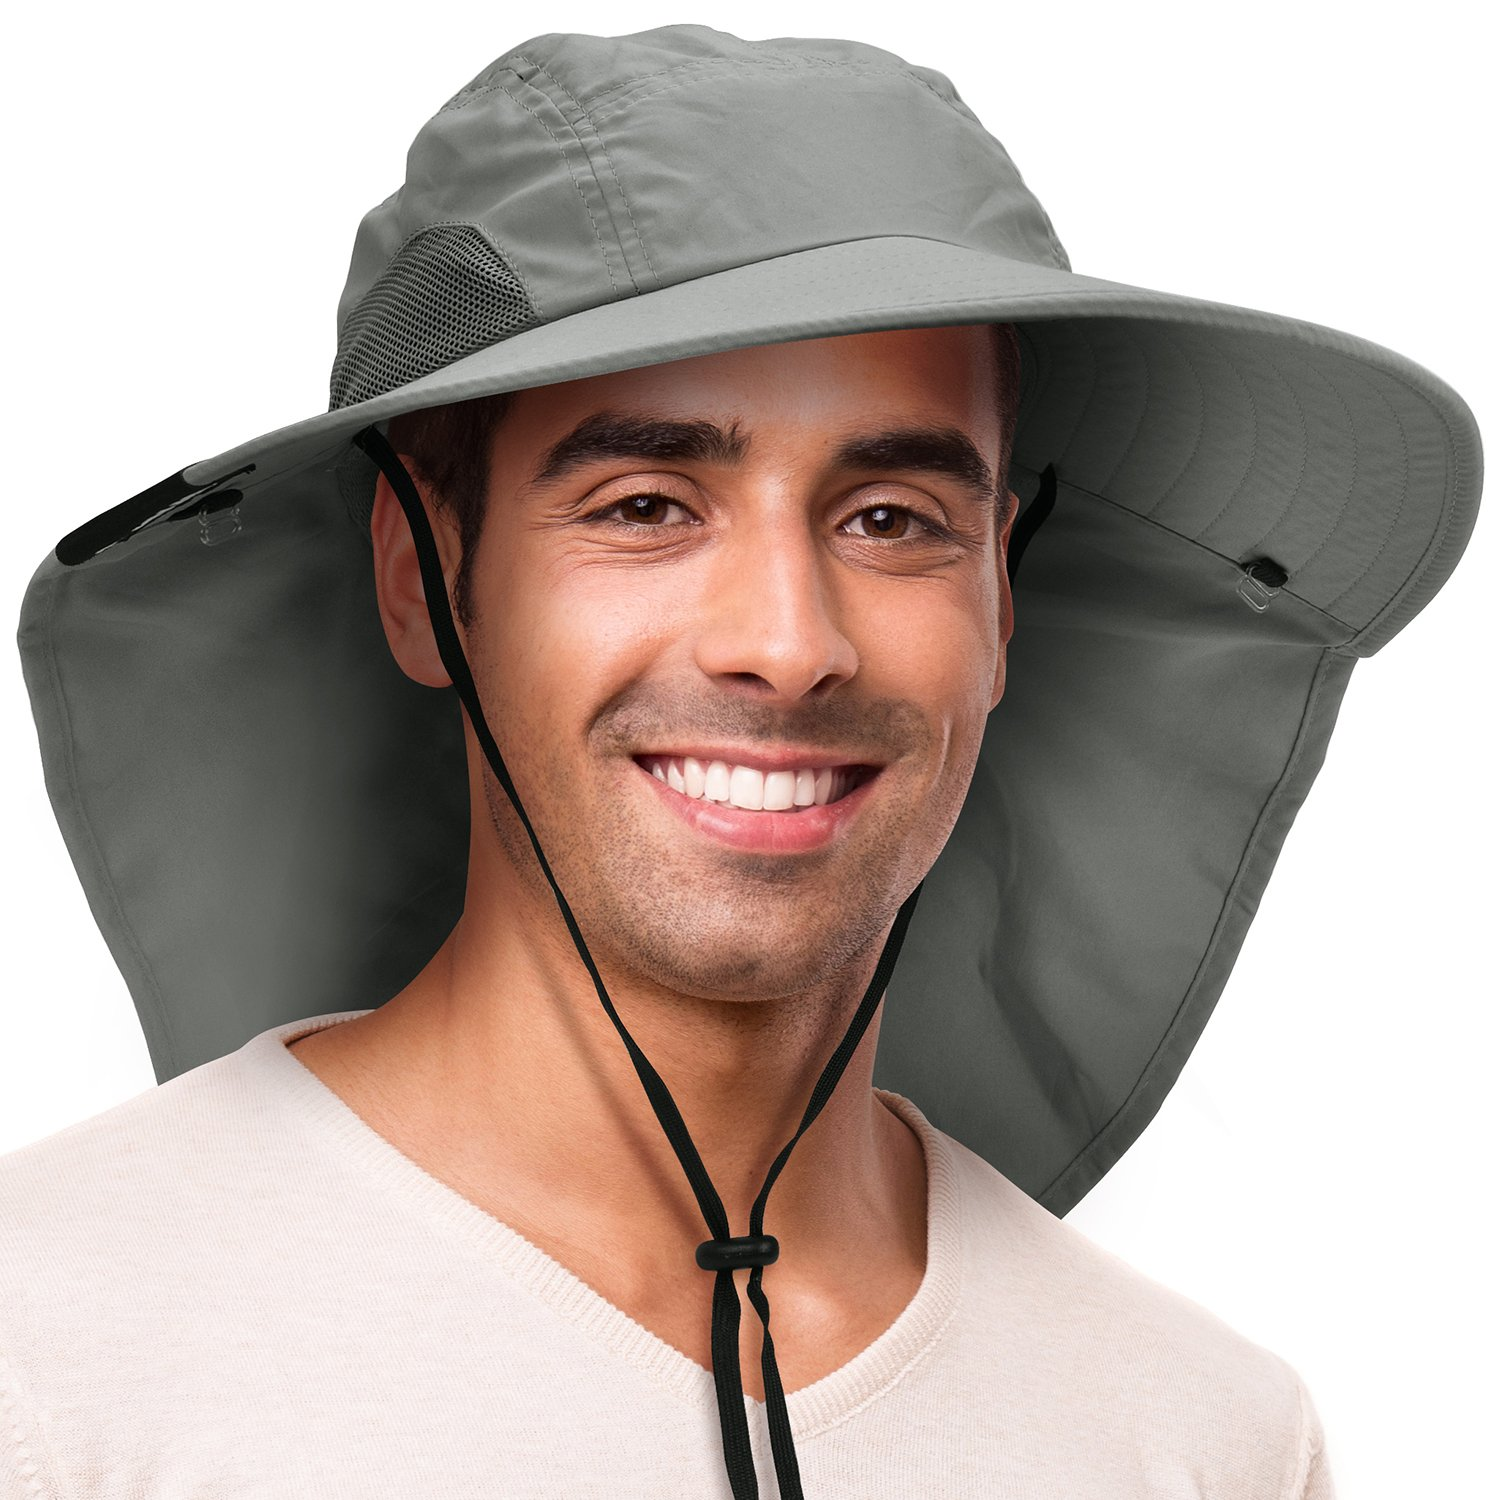 d8c0ee9a2a5efc Solaris Outdoor Fishing Hat with Ear Neck Flap Cover Wide Brim Sun  Protection Safari Cap for Men Women Hunting, Hiking, Camping, Boating &  Outdoor ...